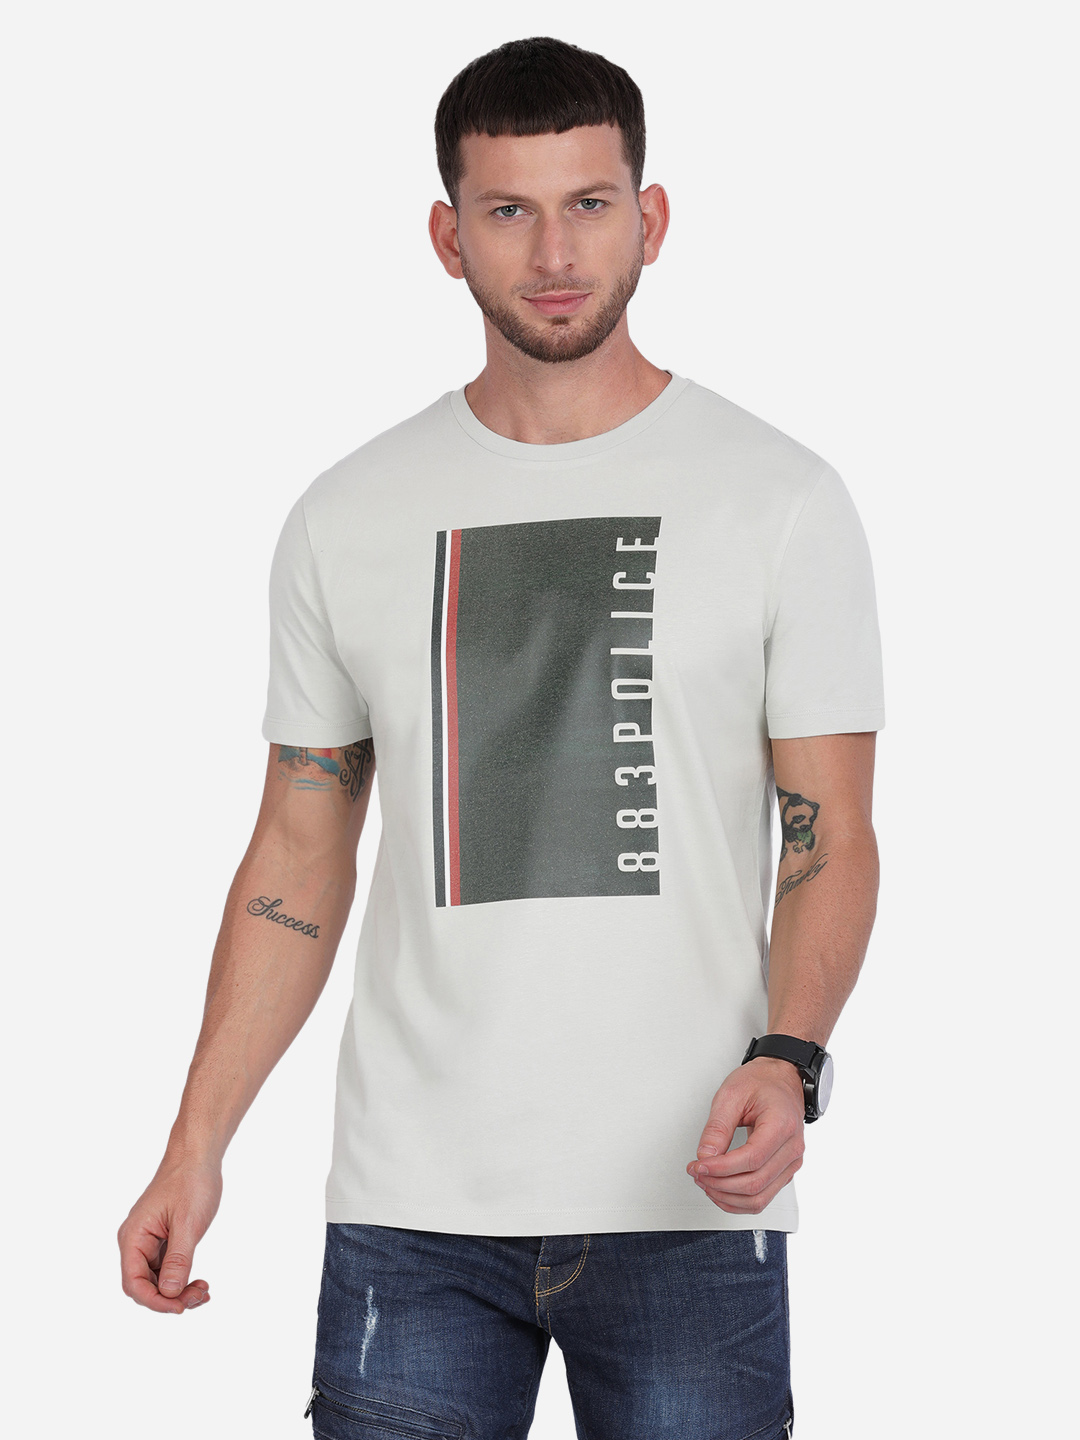 883 Police | 883 Police Toll India T-shirt